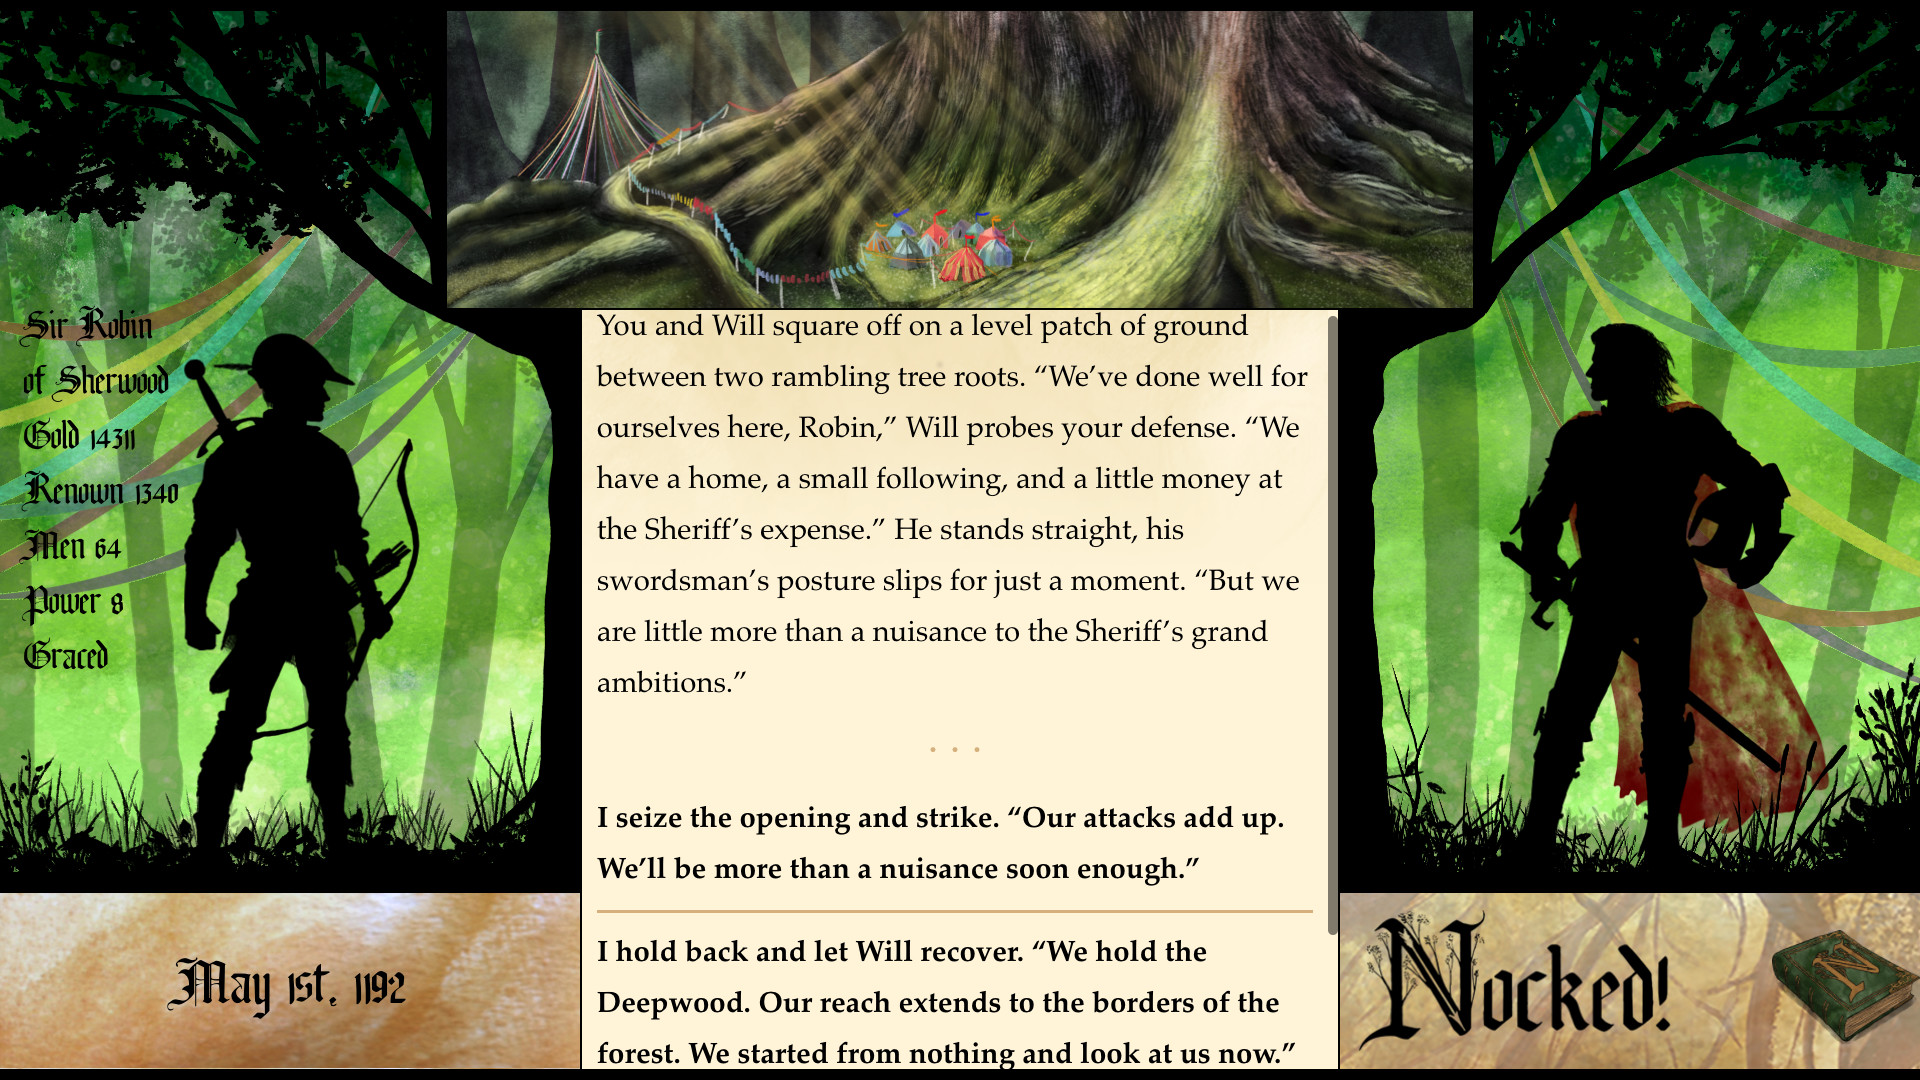 Nocked! is a Robin Hood RPG where you tell the story